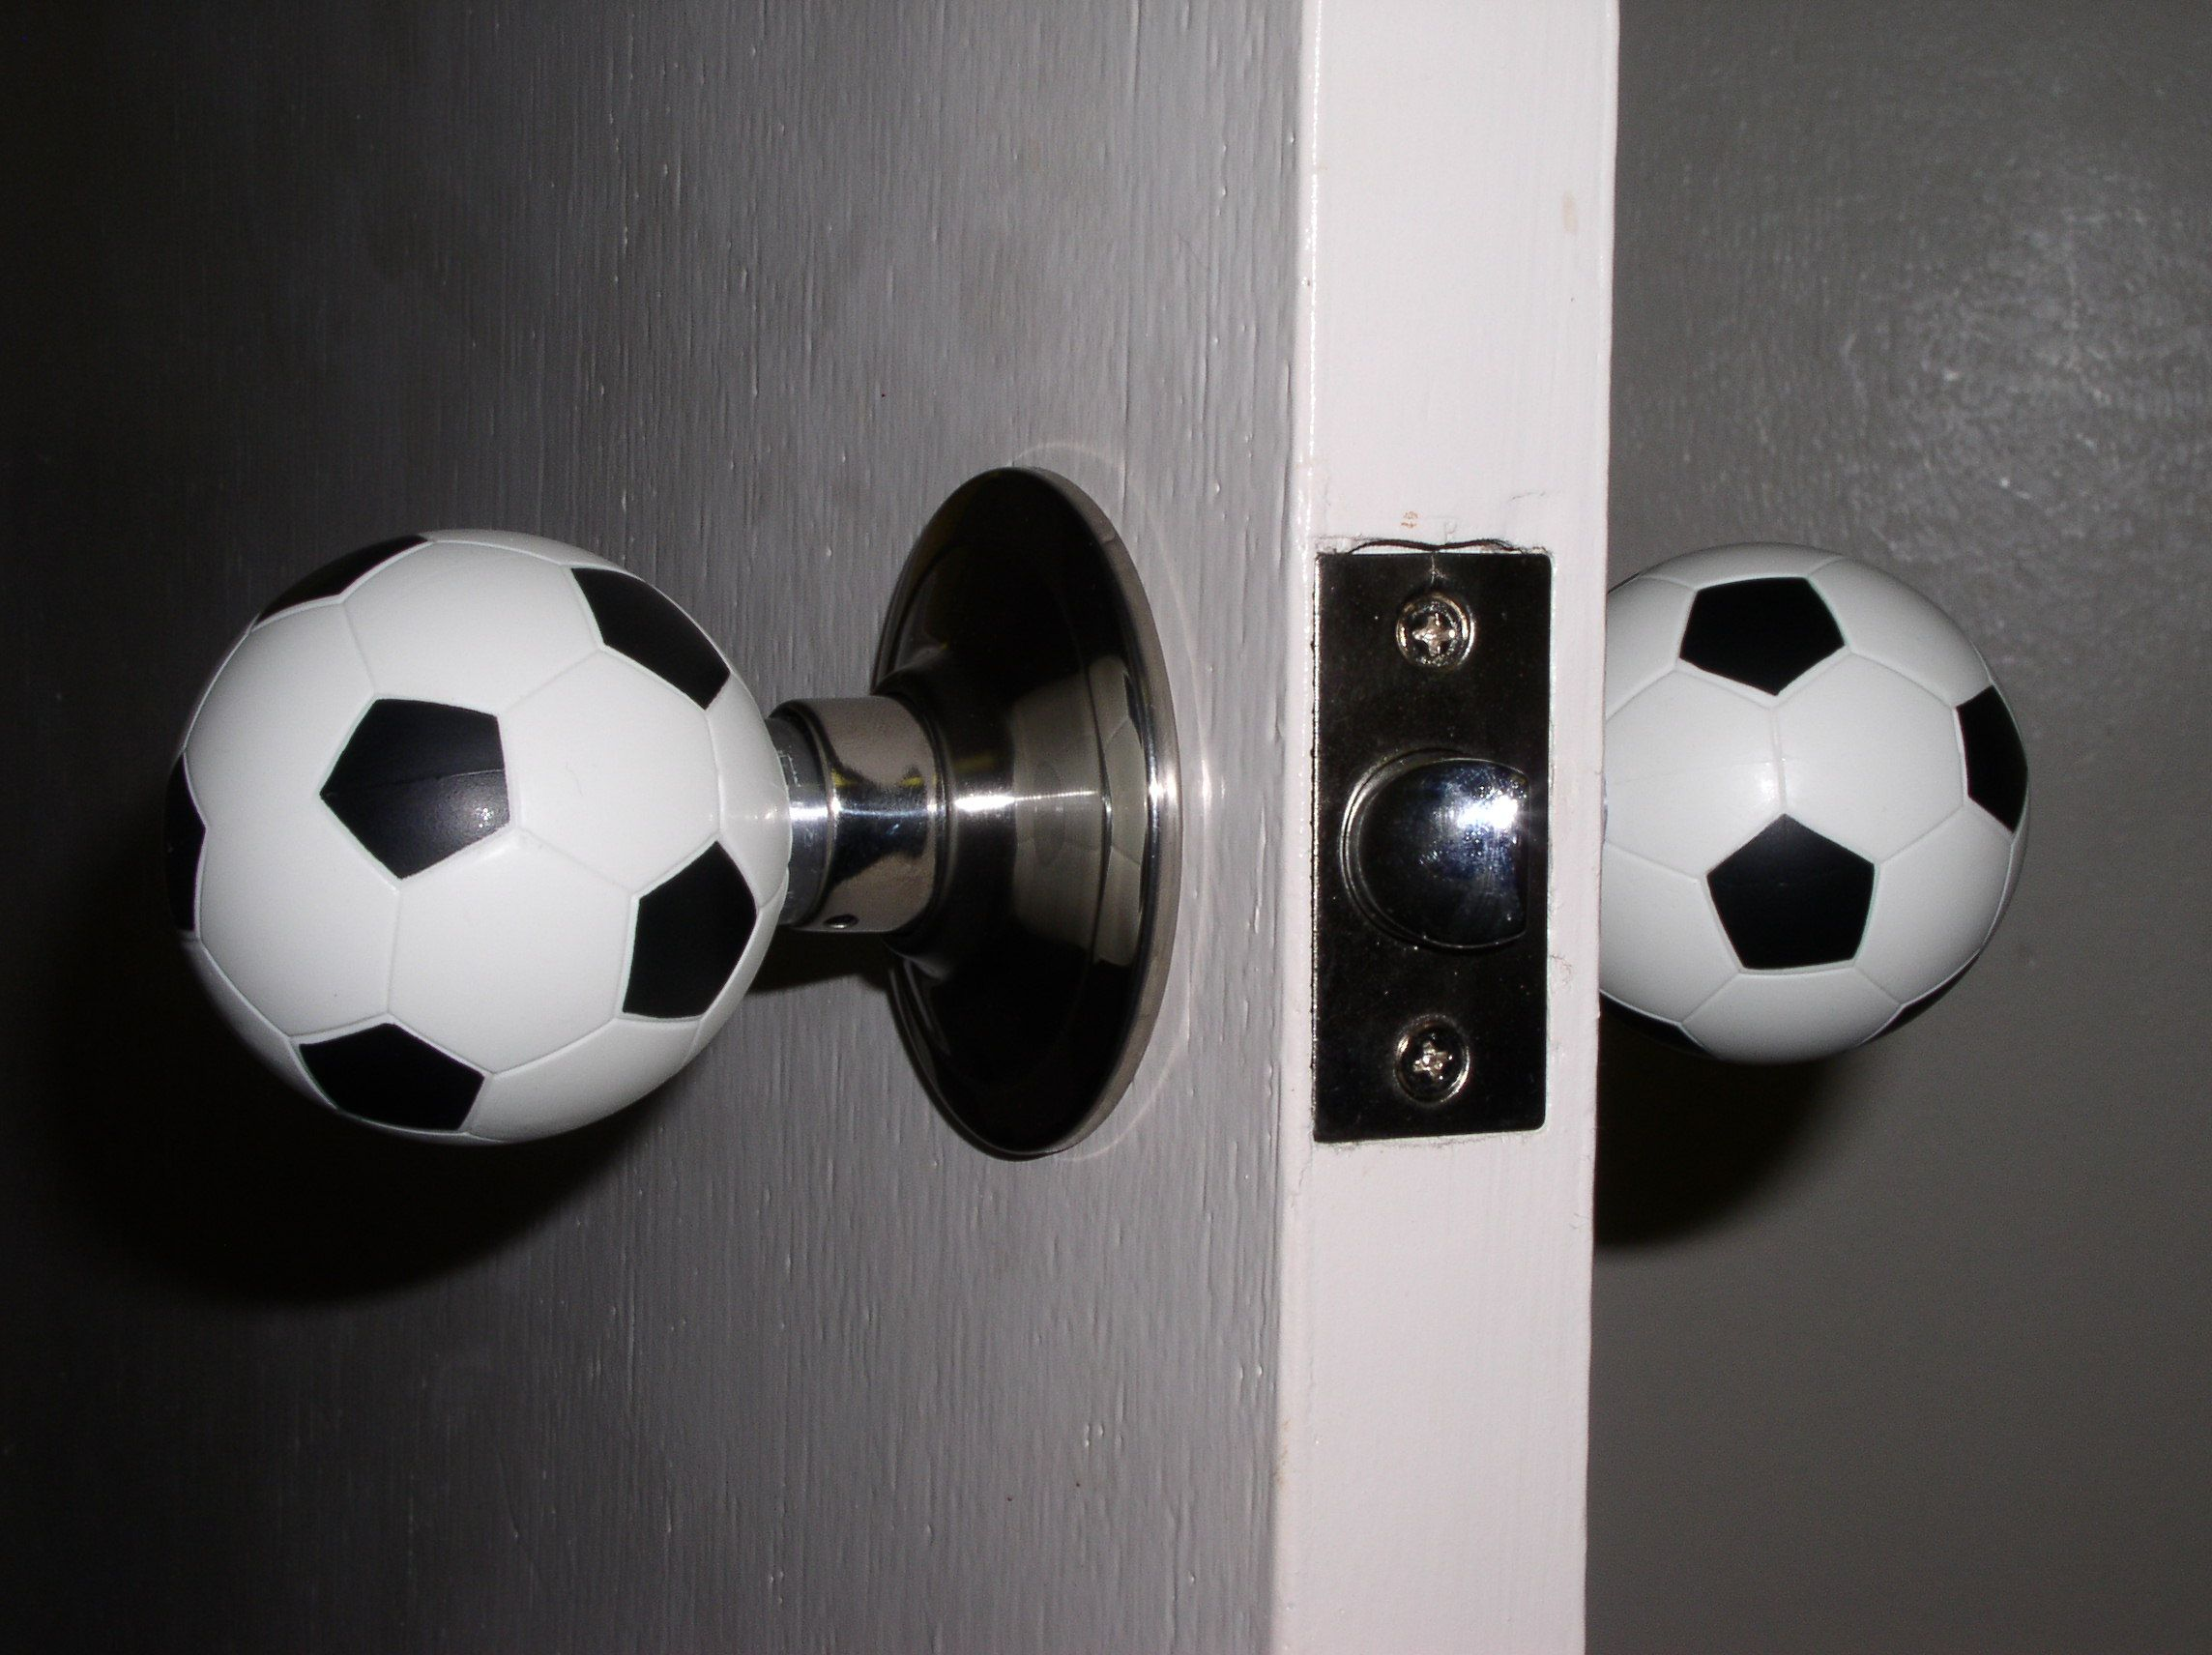 Pin by FYSA Soccer on Soccer Life | Pinterest | Door knobs, Doors ...